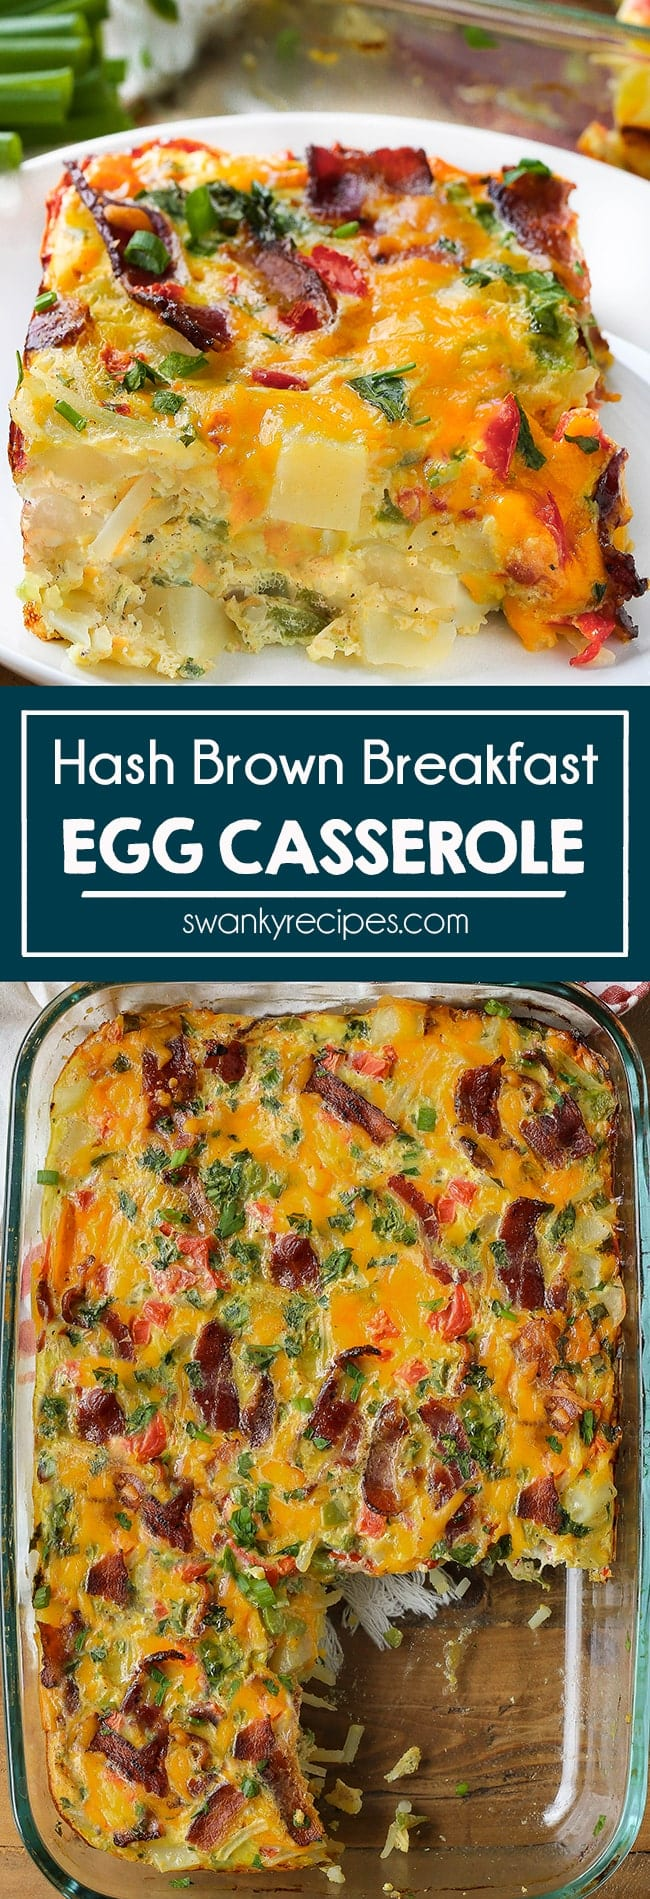 Wake up to this easy HASHBROWN BREAKFAST CASSEROLE on Easter morning. This hearty egg casserole is made with potatoes, cheese, tomatoes, bell peppers, onions, and bacon. My family requests this simple egg bake for a savory breakfast at every holiday. Make this night before and bake it in the oven for a tasty Easter brunch.